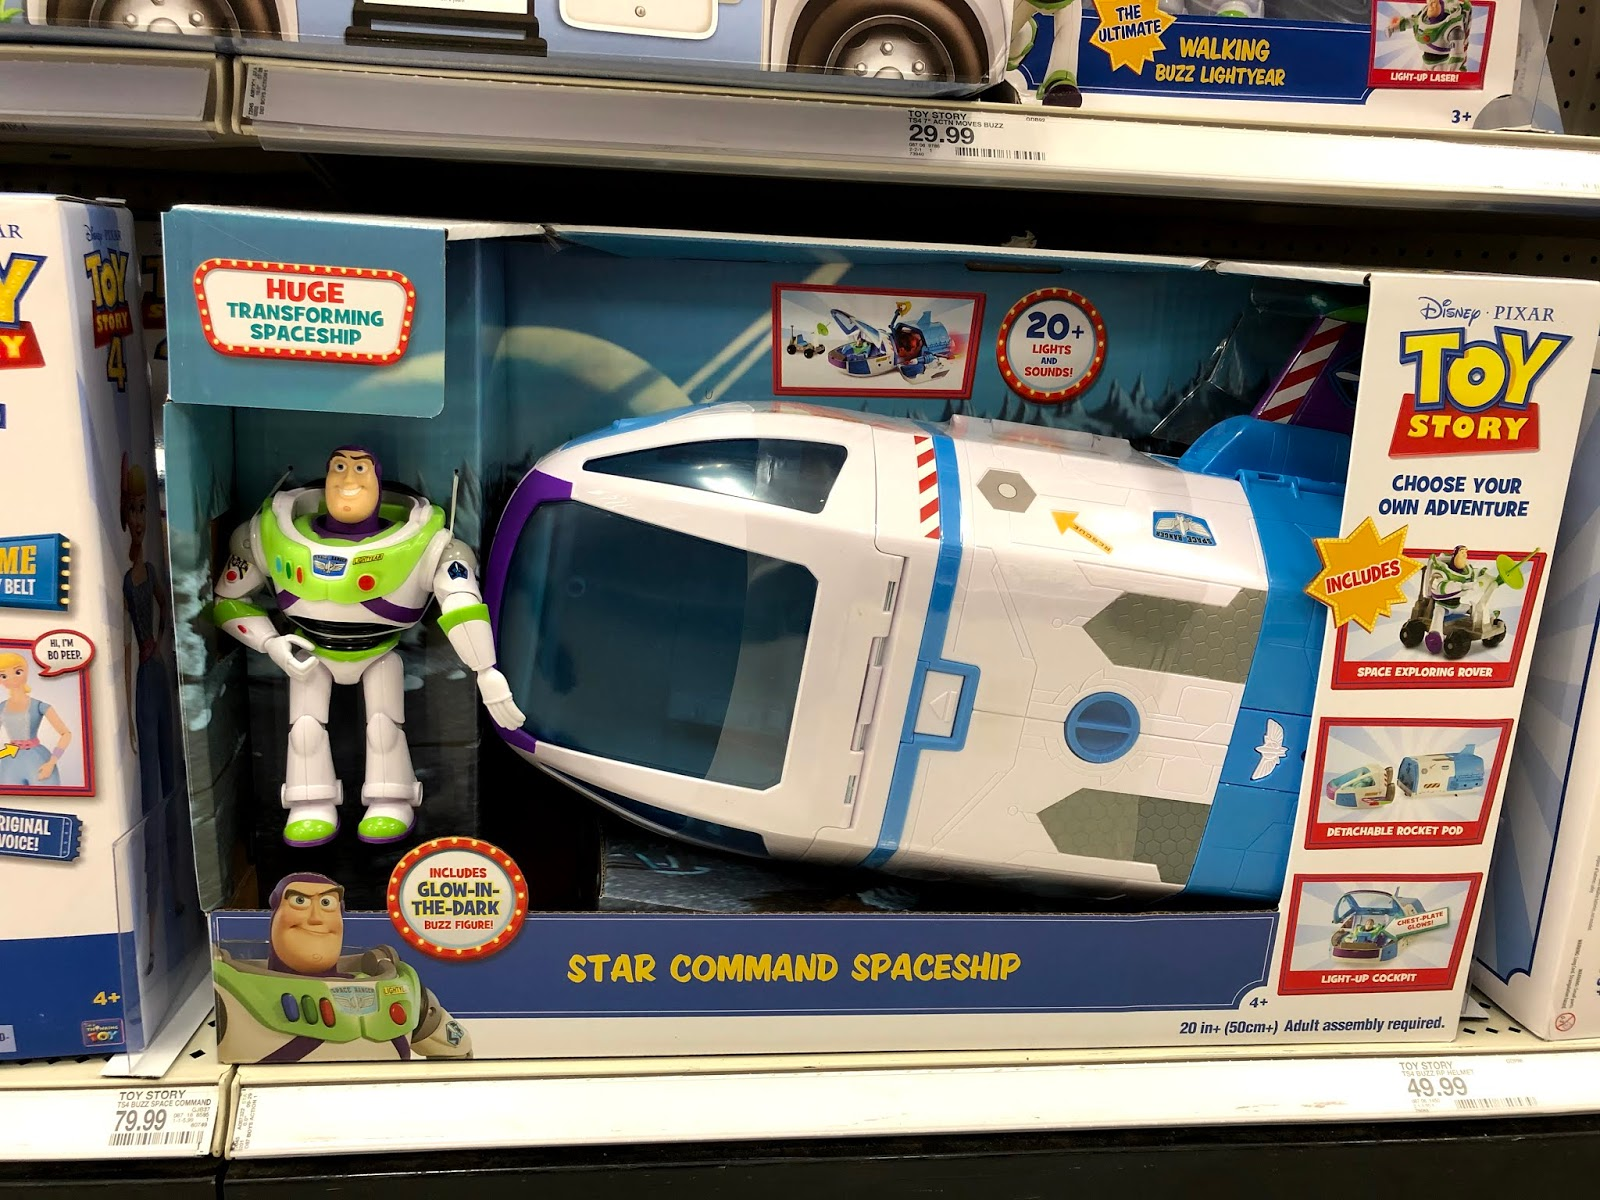 Toy Story Star Command Spaceship playset